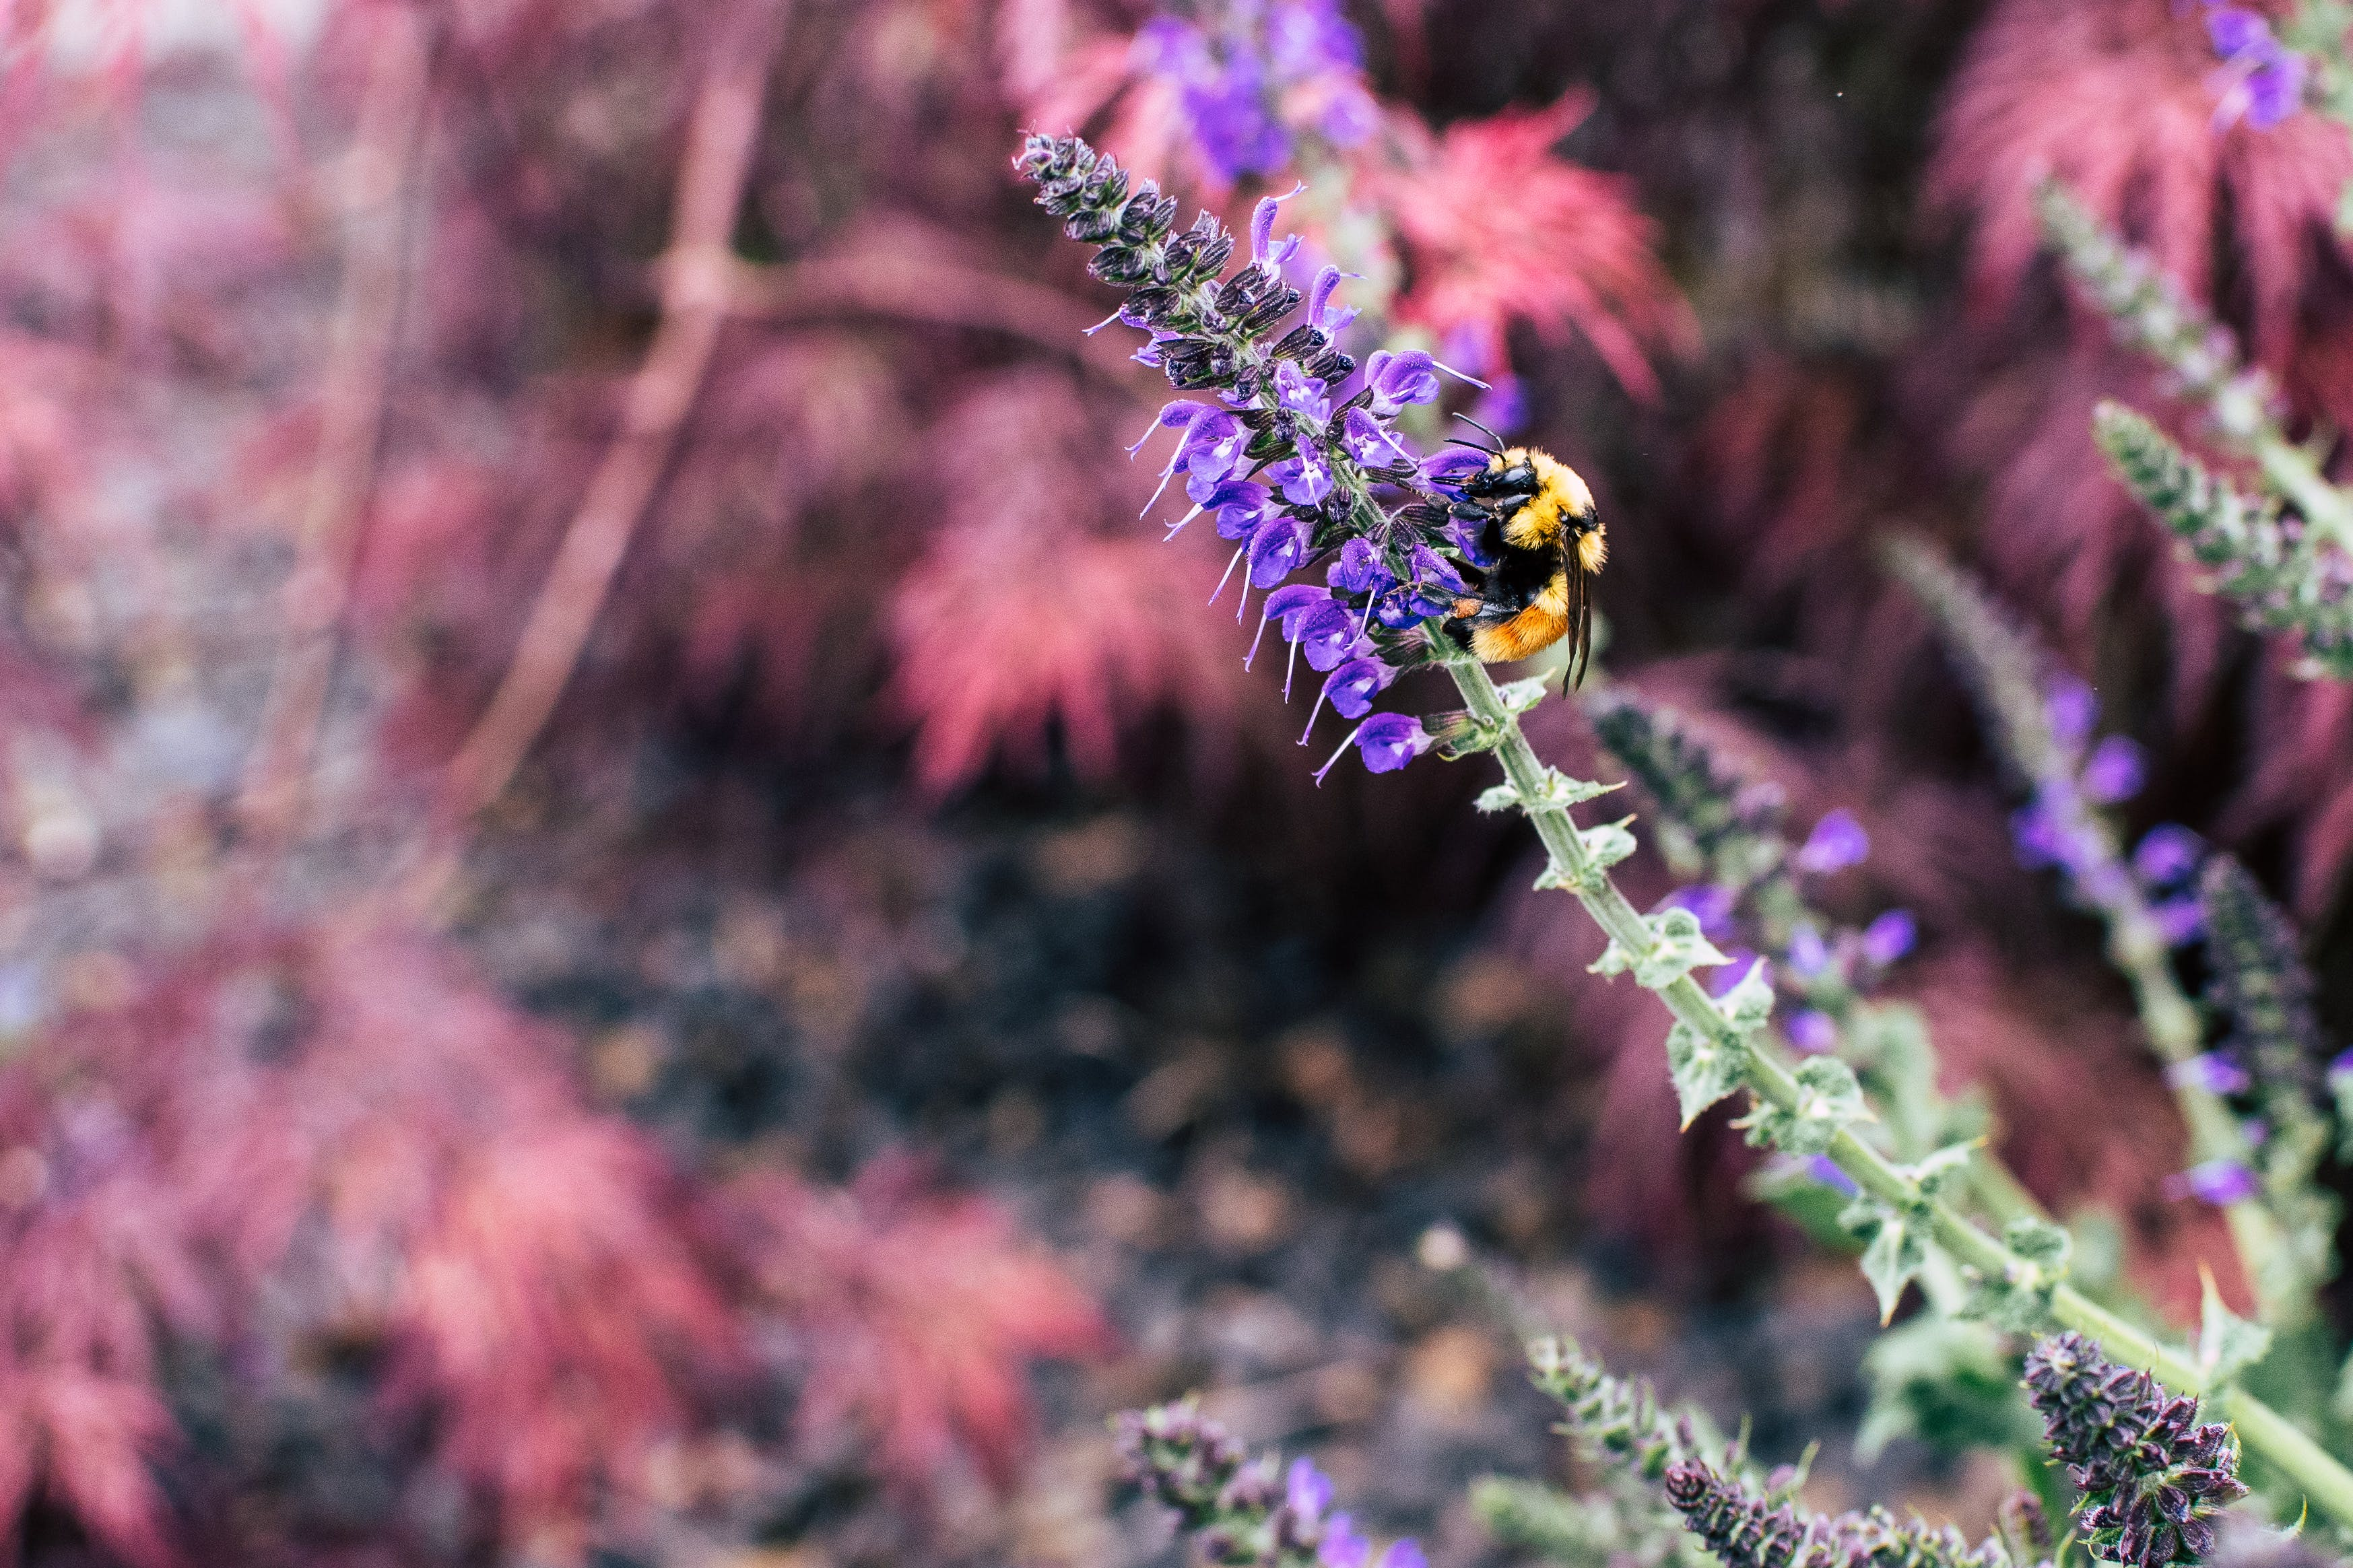 Bee Sipping Nectars on Flower